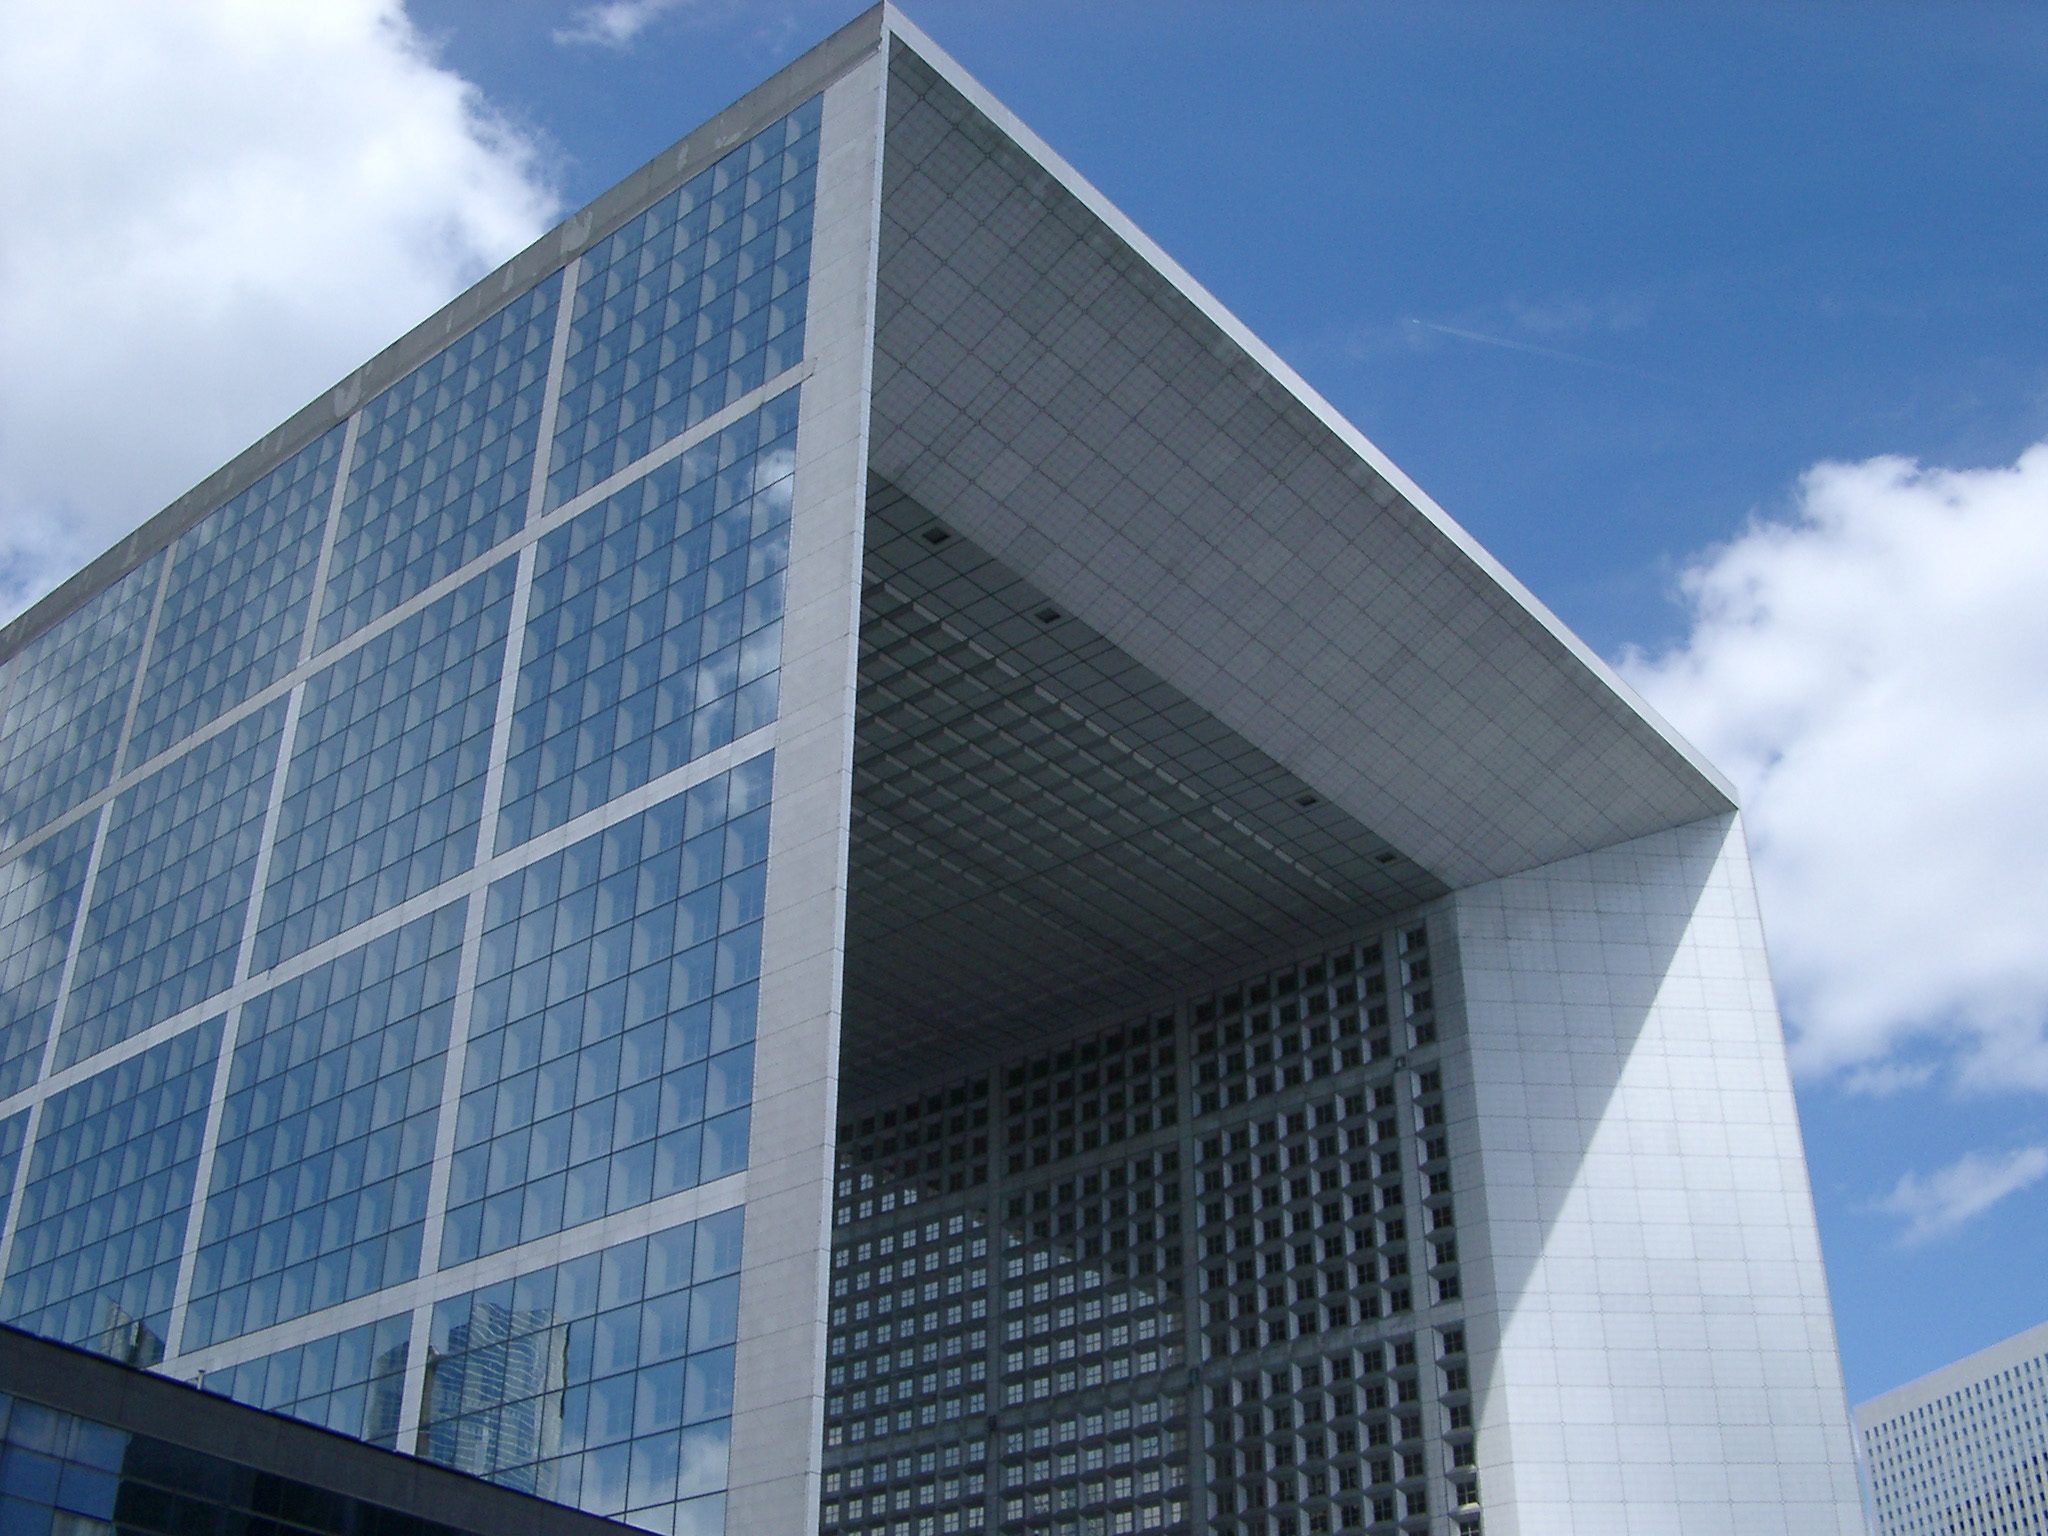 Looking Up at Grande Arche de la Defense Monument in Paris, France